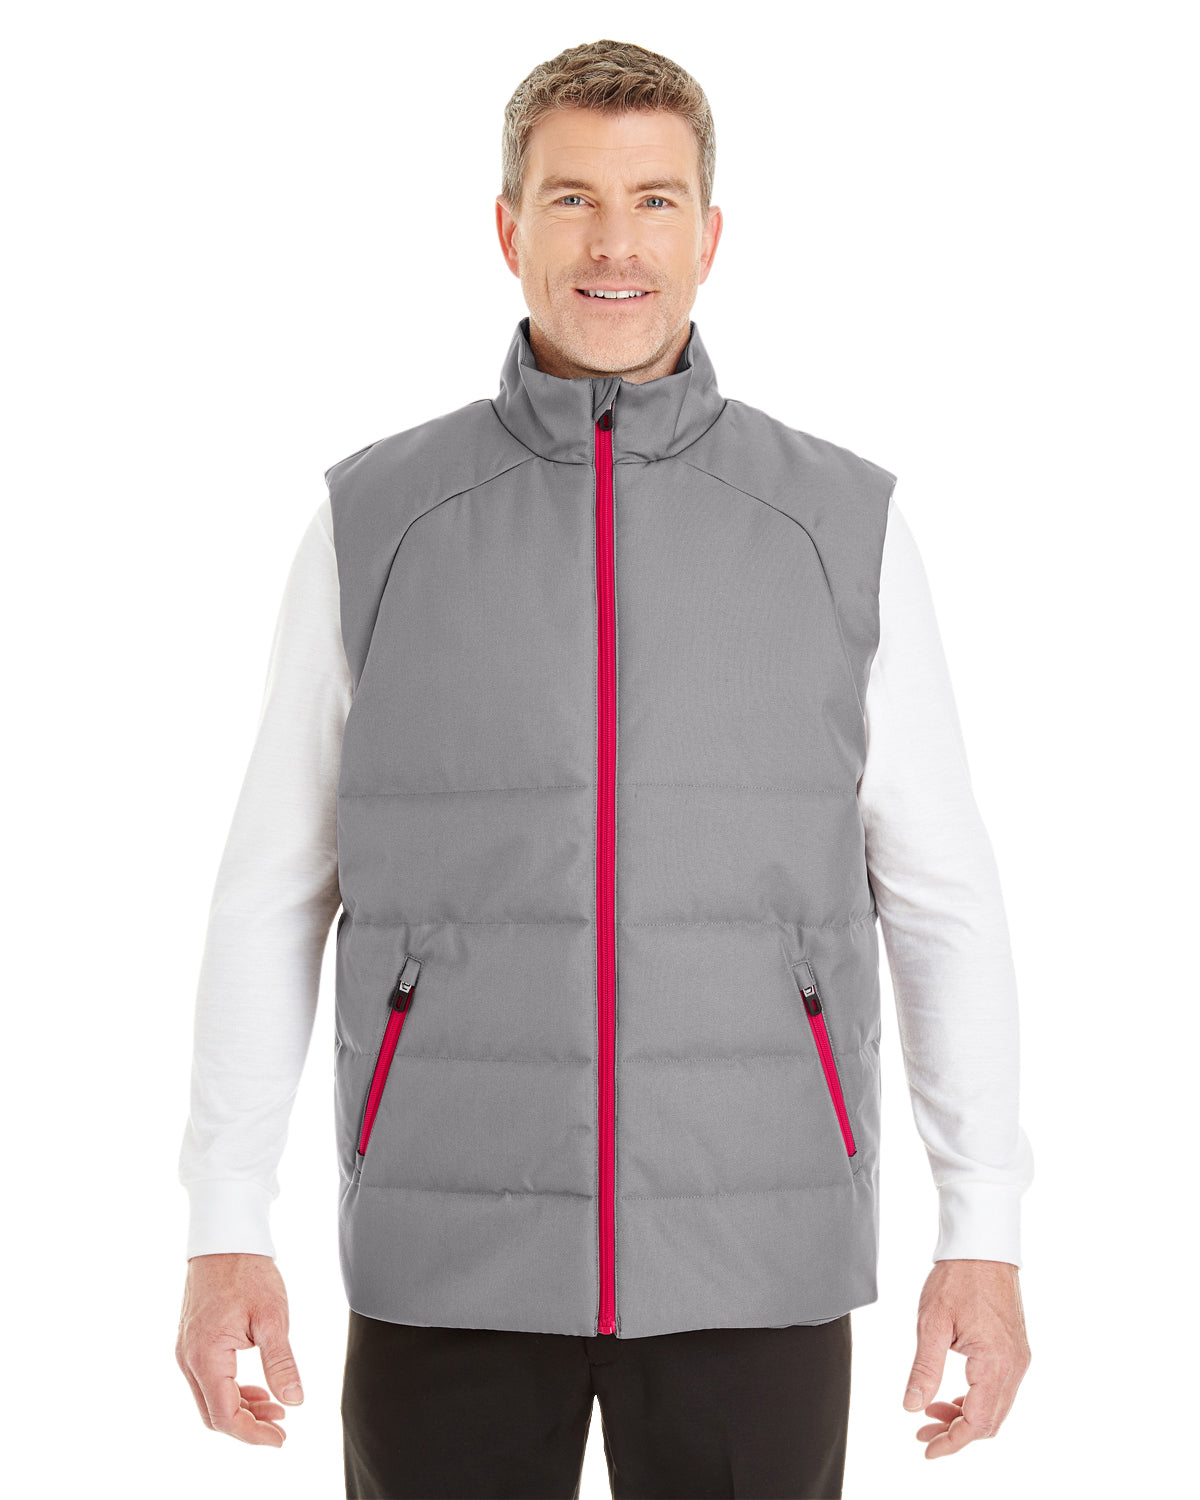 NORTH END MEN'S ENGAGE INSULATED VEST